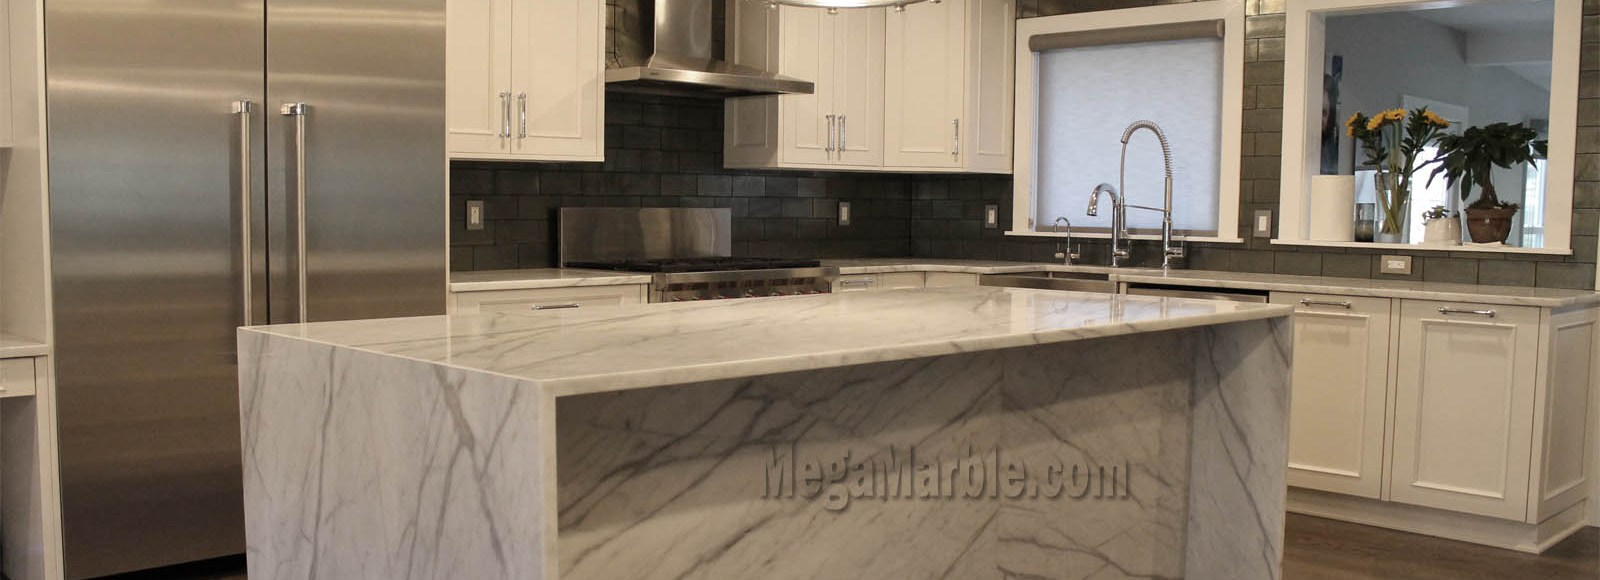 QUARTZITE COUNTERTOP SLABS